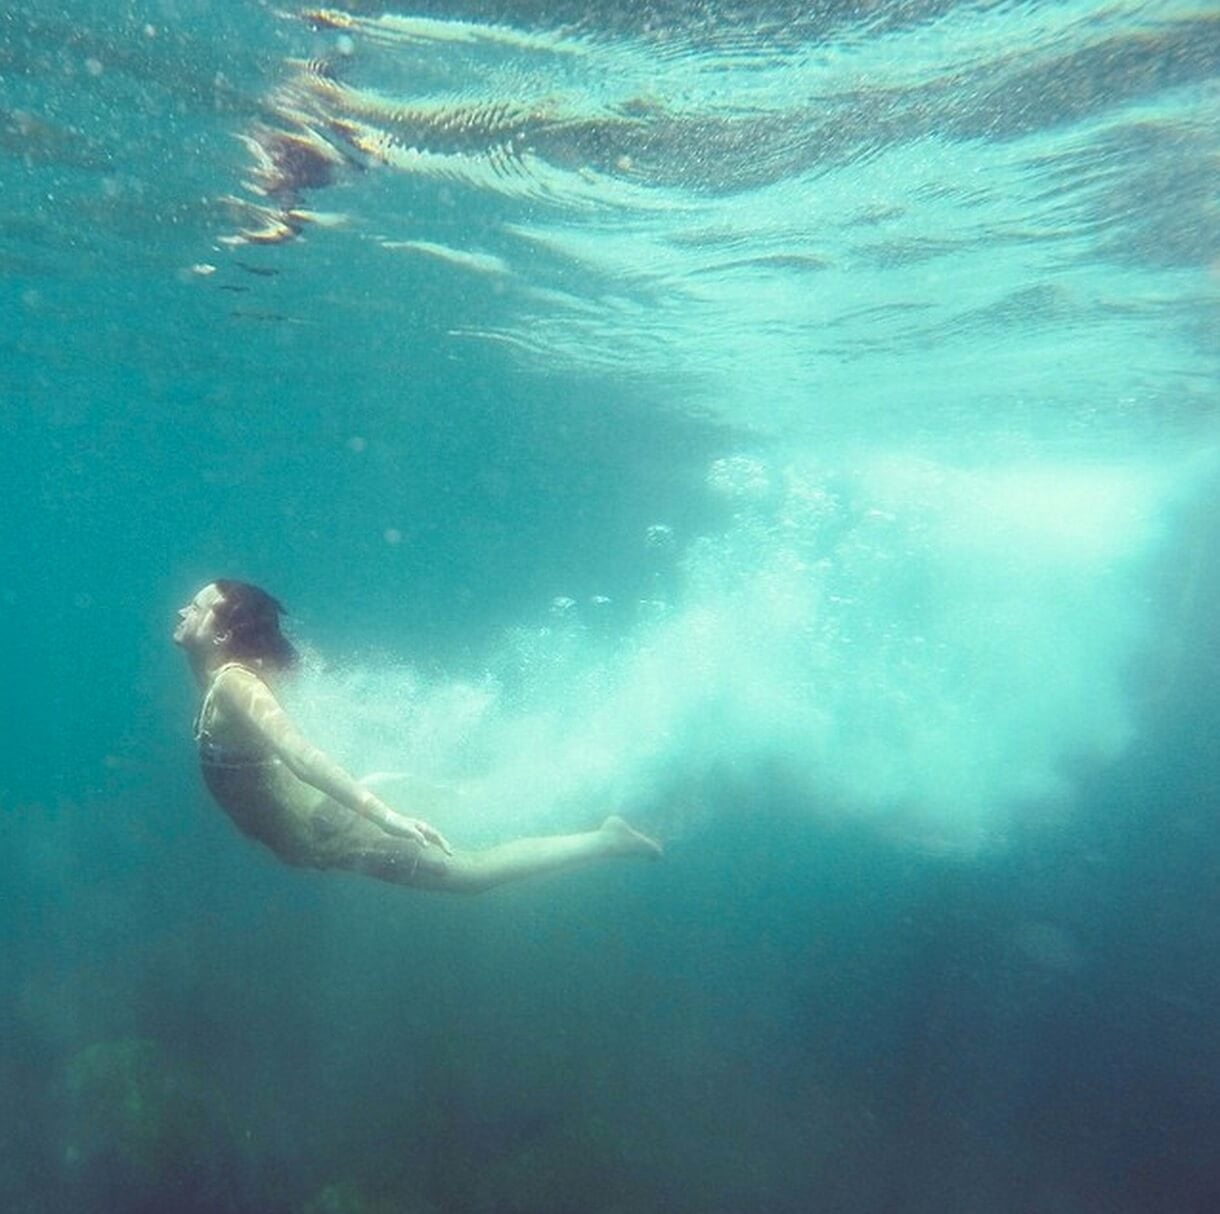 underwater photo of woman swimming